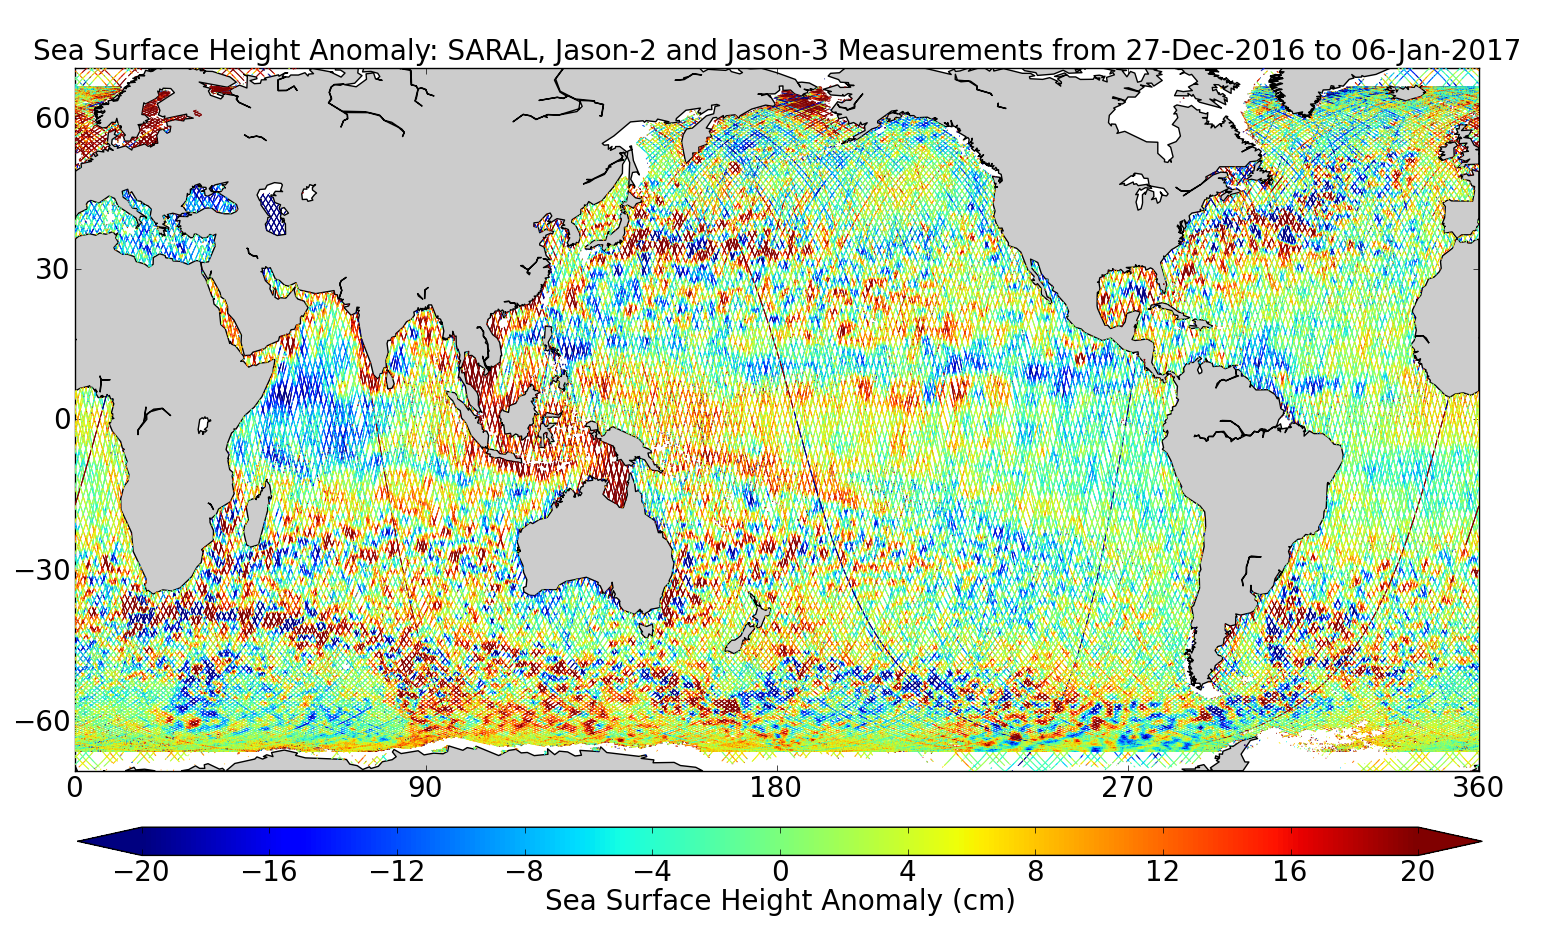 Sea Surface Height Anomaly: SARAL, Jason-2 and Jason-3 Measurements from 27-Dec-2016 to 06-Jan-2017